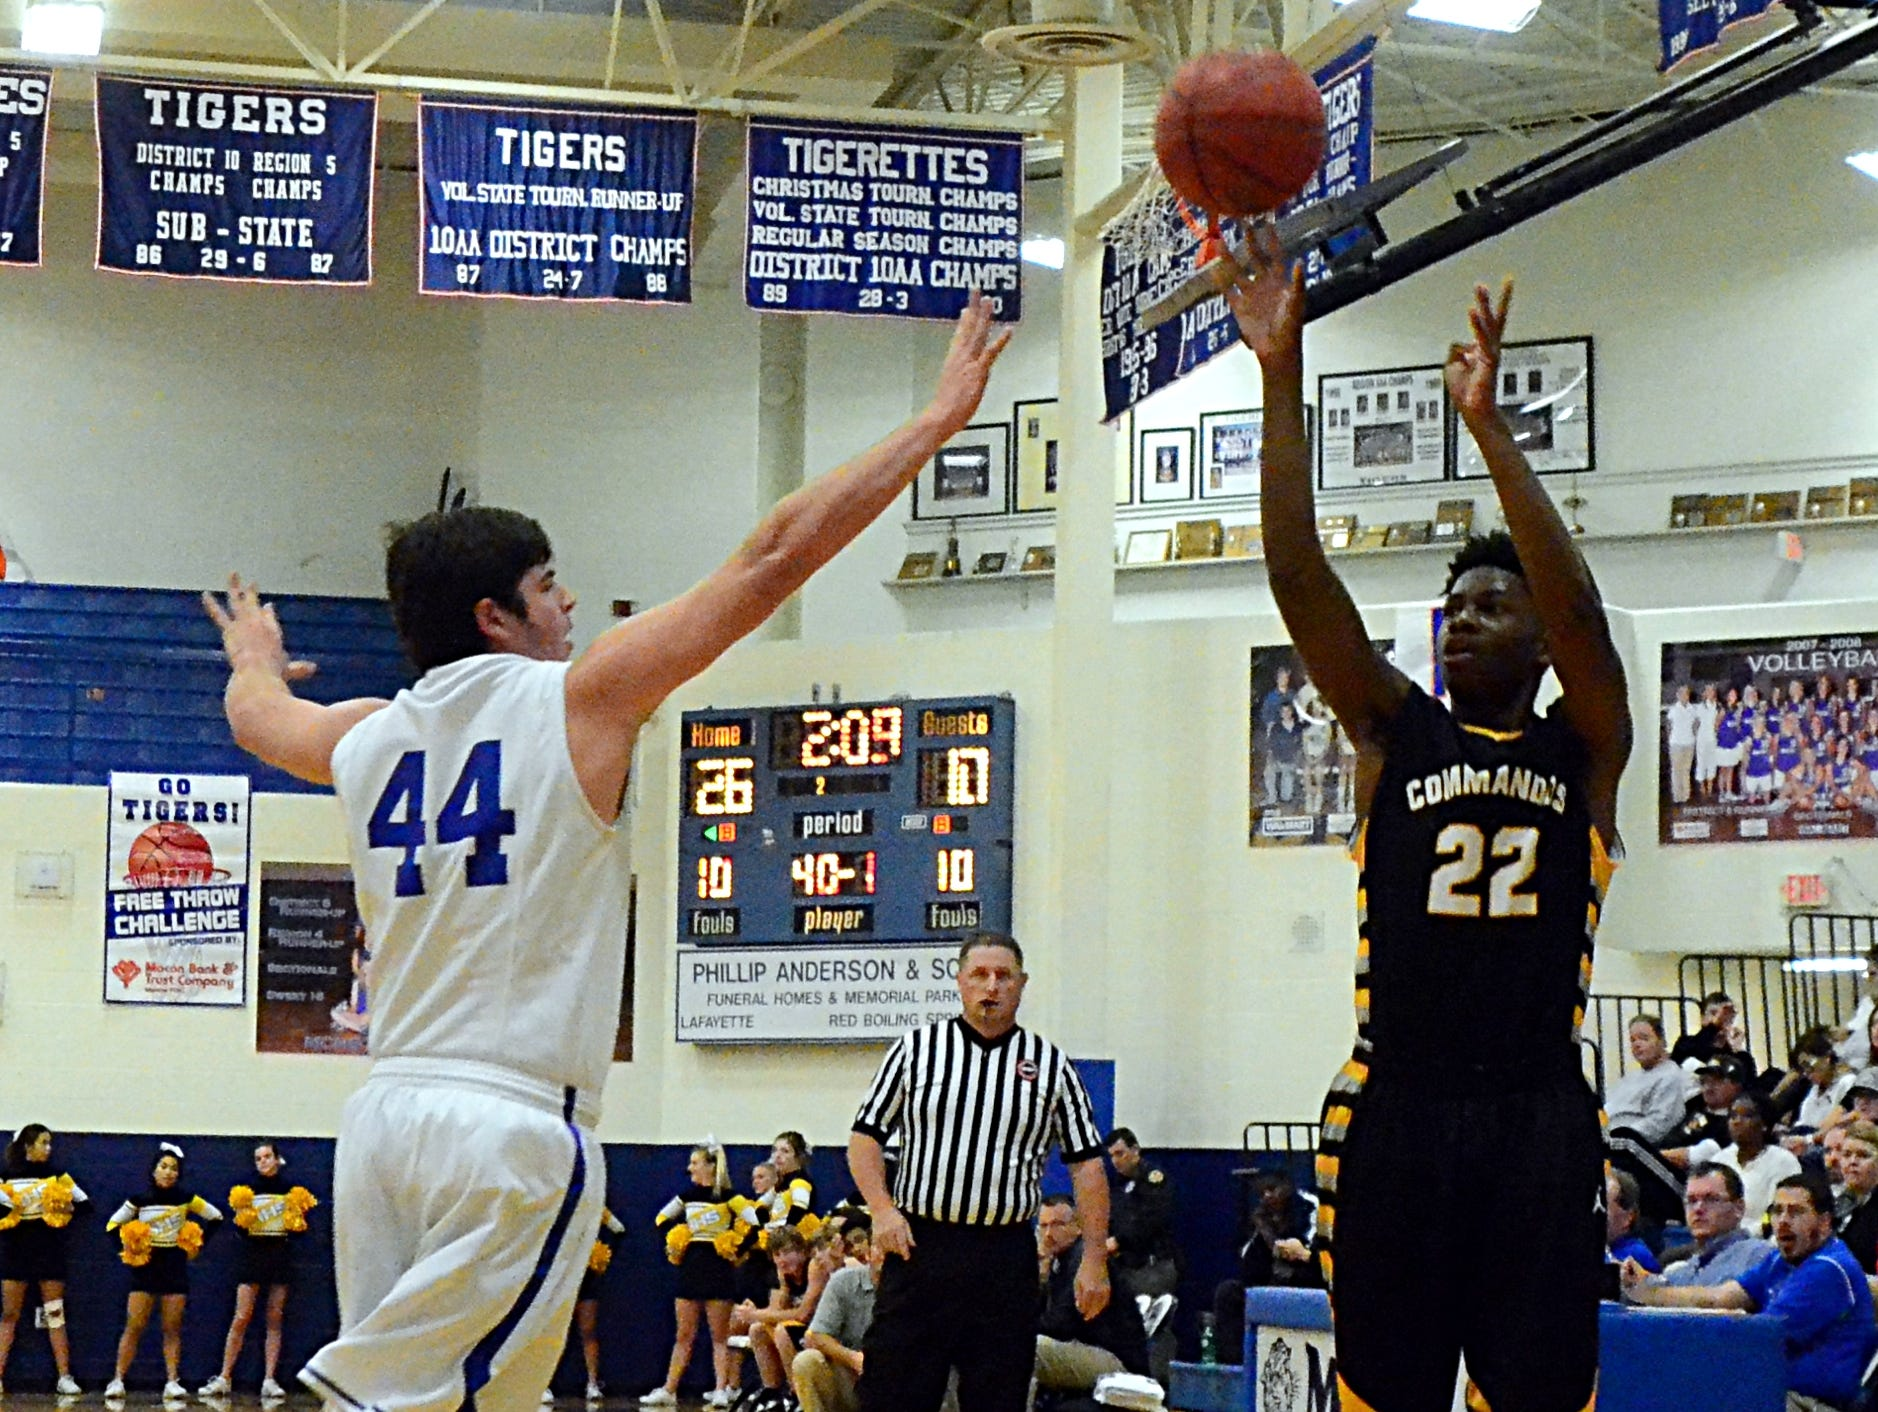 Hendersonville High senior Bryan Scott releases a 3-pointer as Macon County senior Clay Carnahan challenges during second-quarter action.